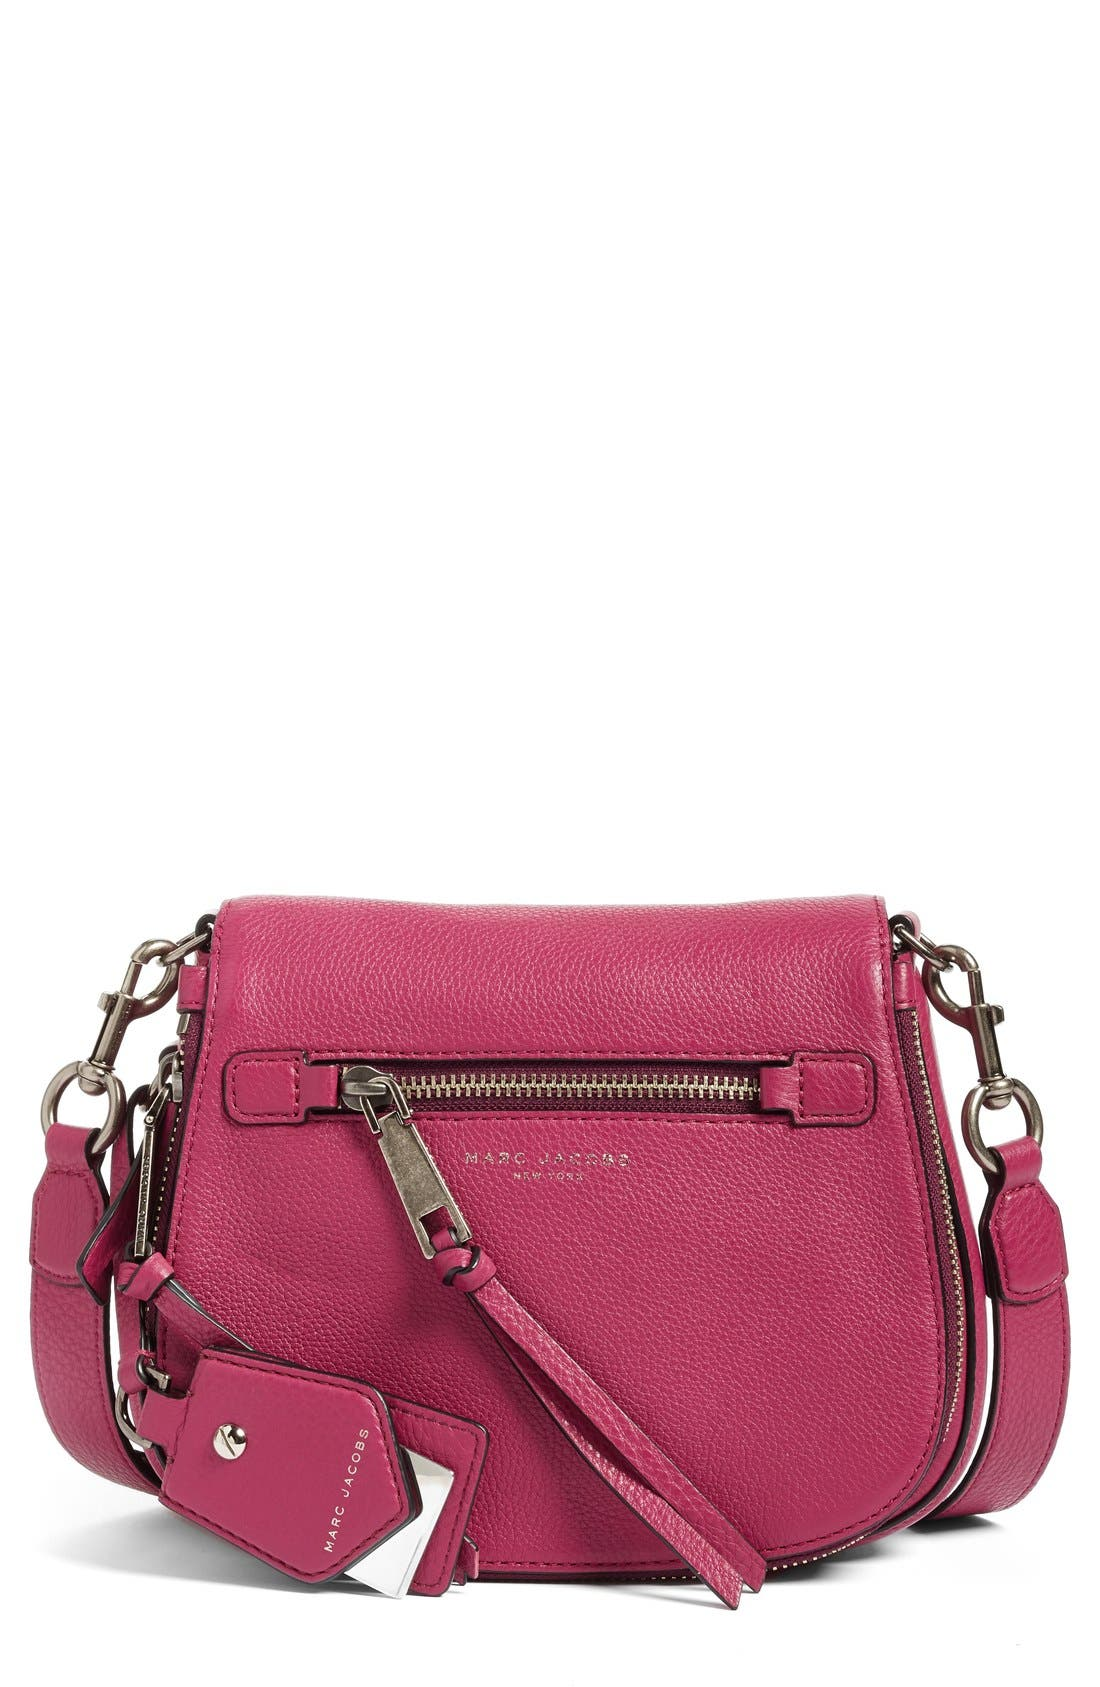 Small Recruit Nomad Pebbled Leather Crossbody Bag,                             Main thumbnail 13, color,